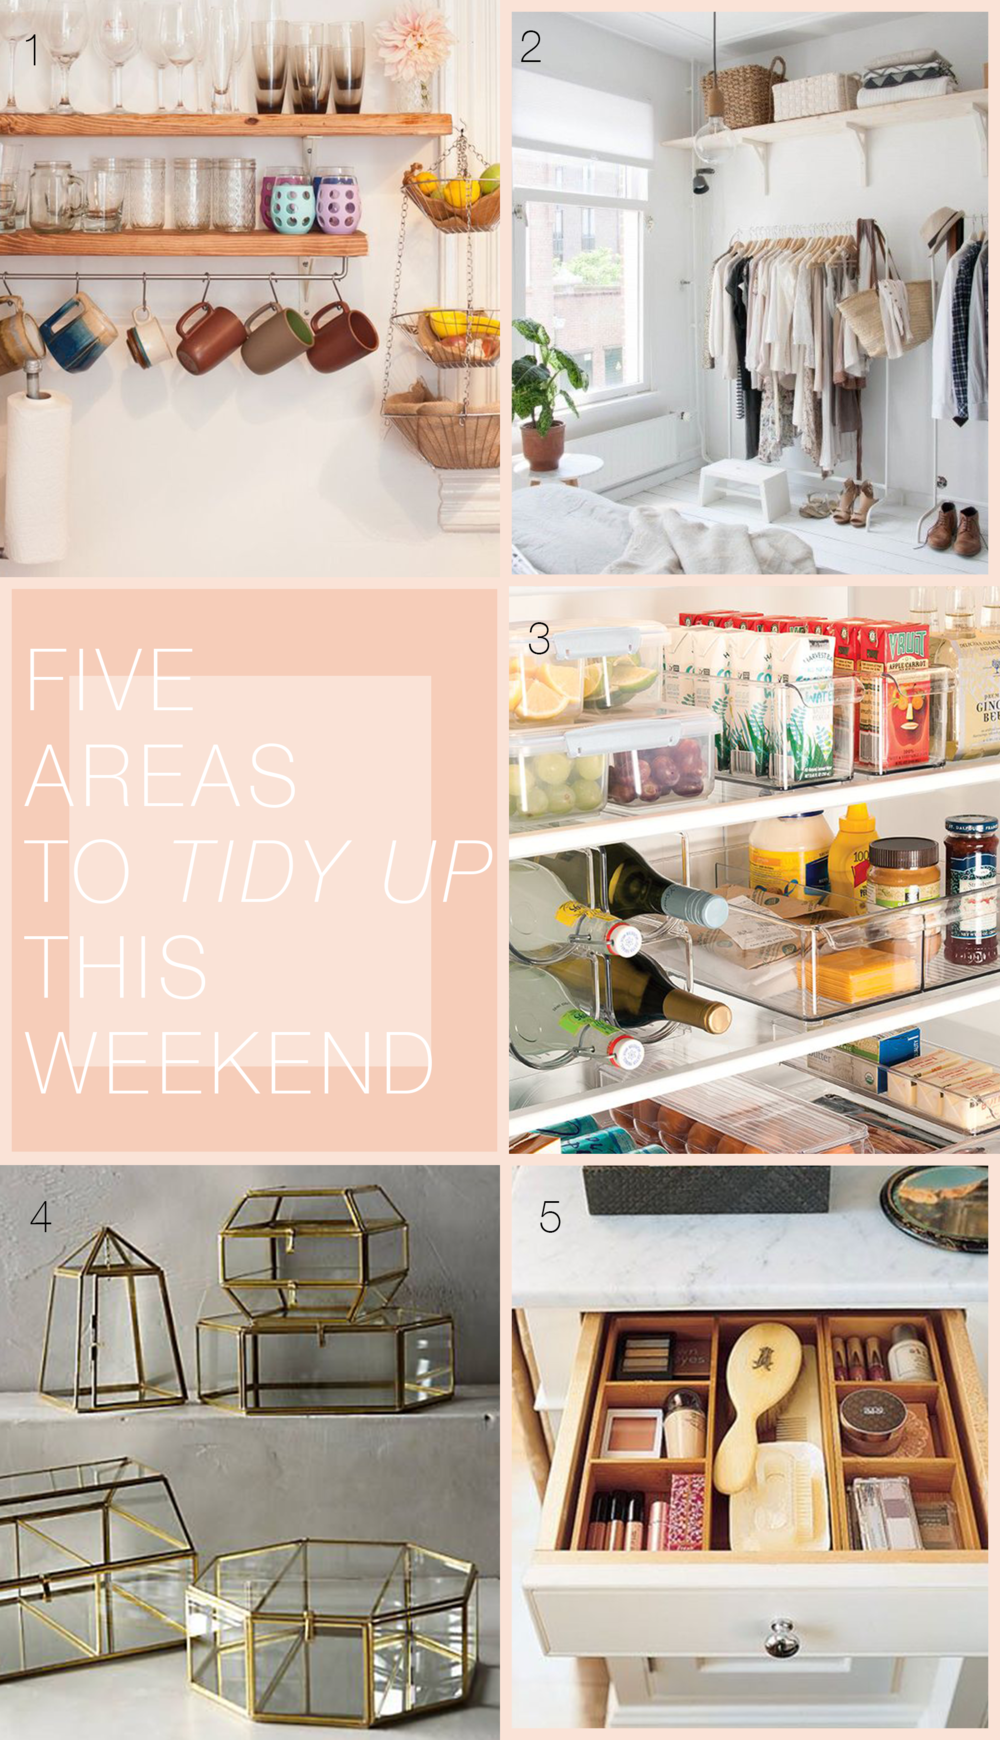 Five Areas to Tidy Up This Weekend via allthedelights.com